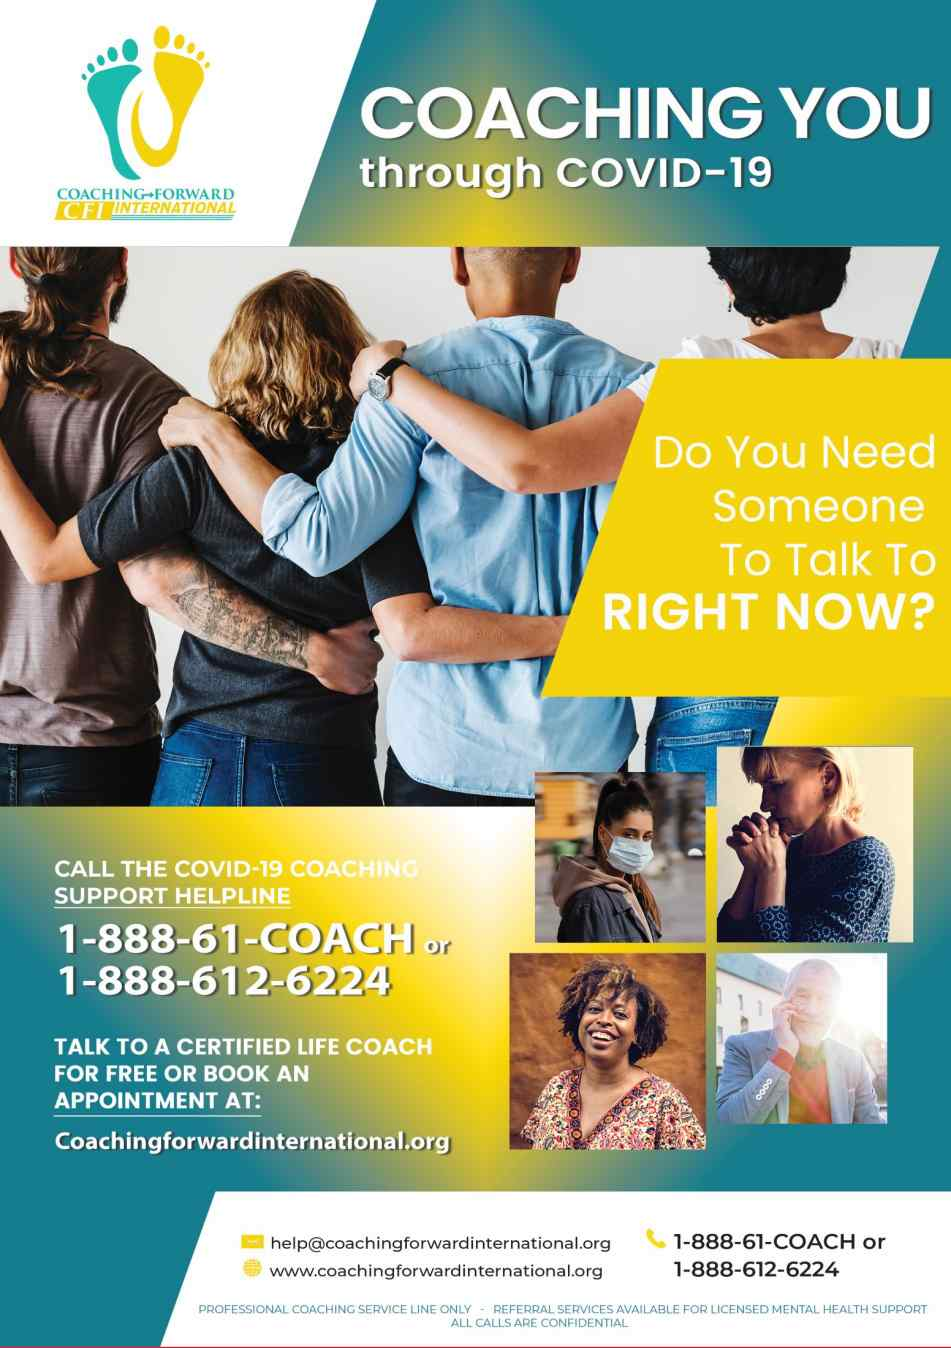 National COVID-19 Coaching Support Helpline